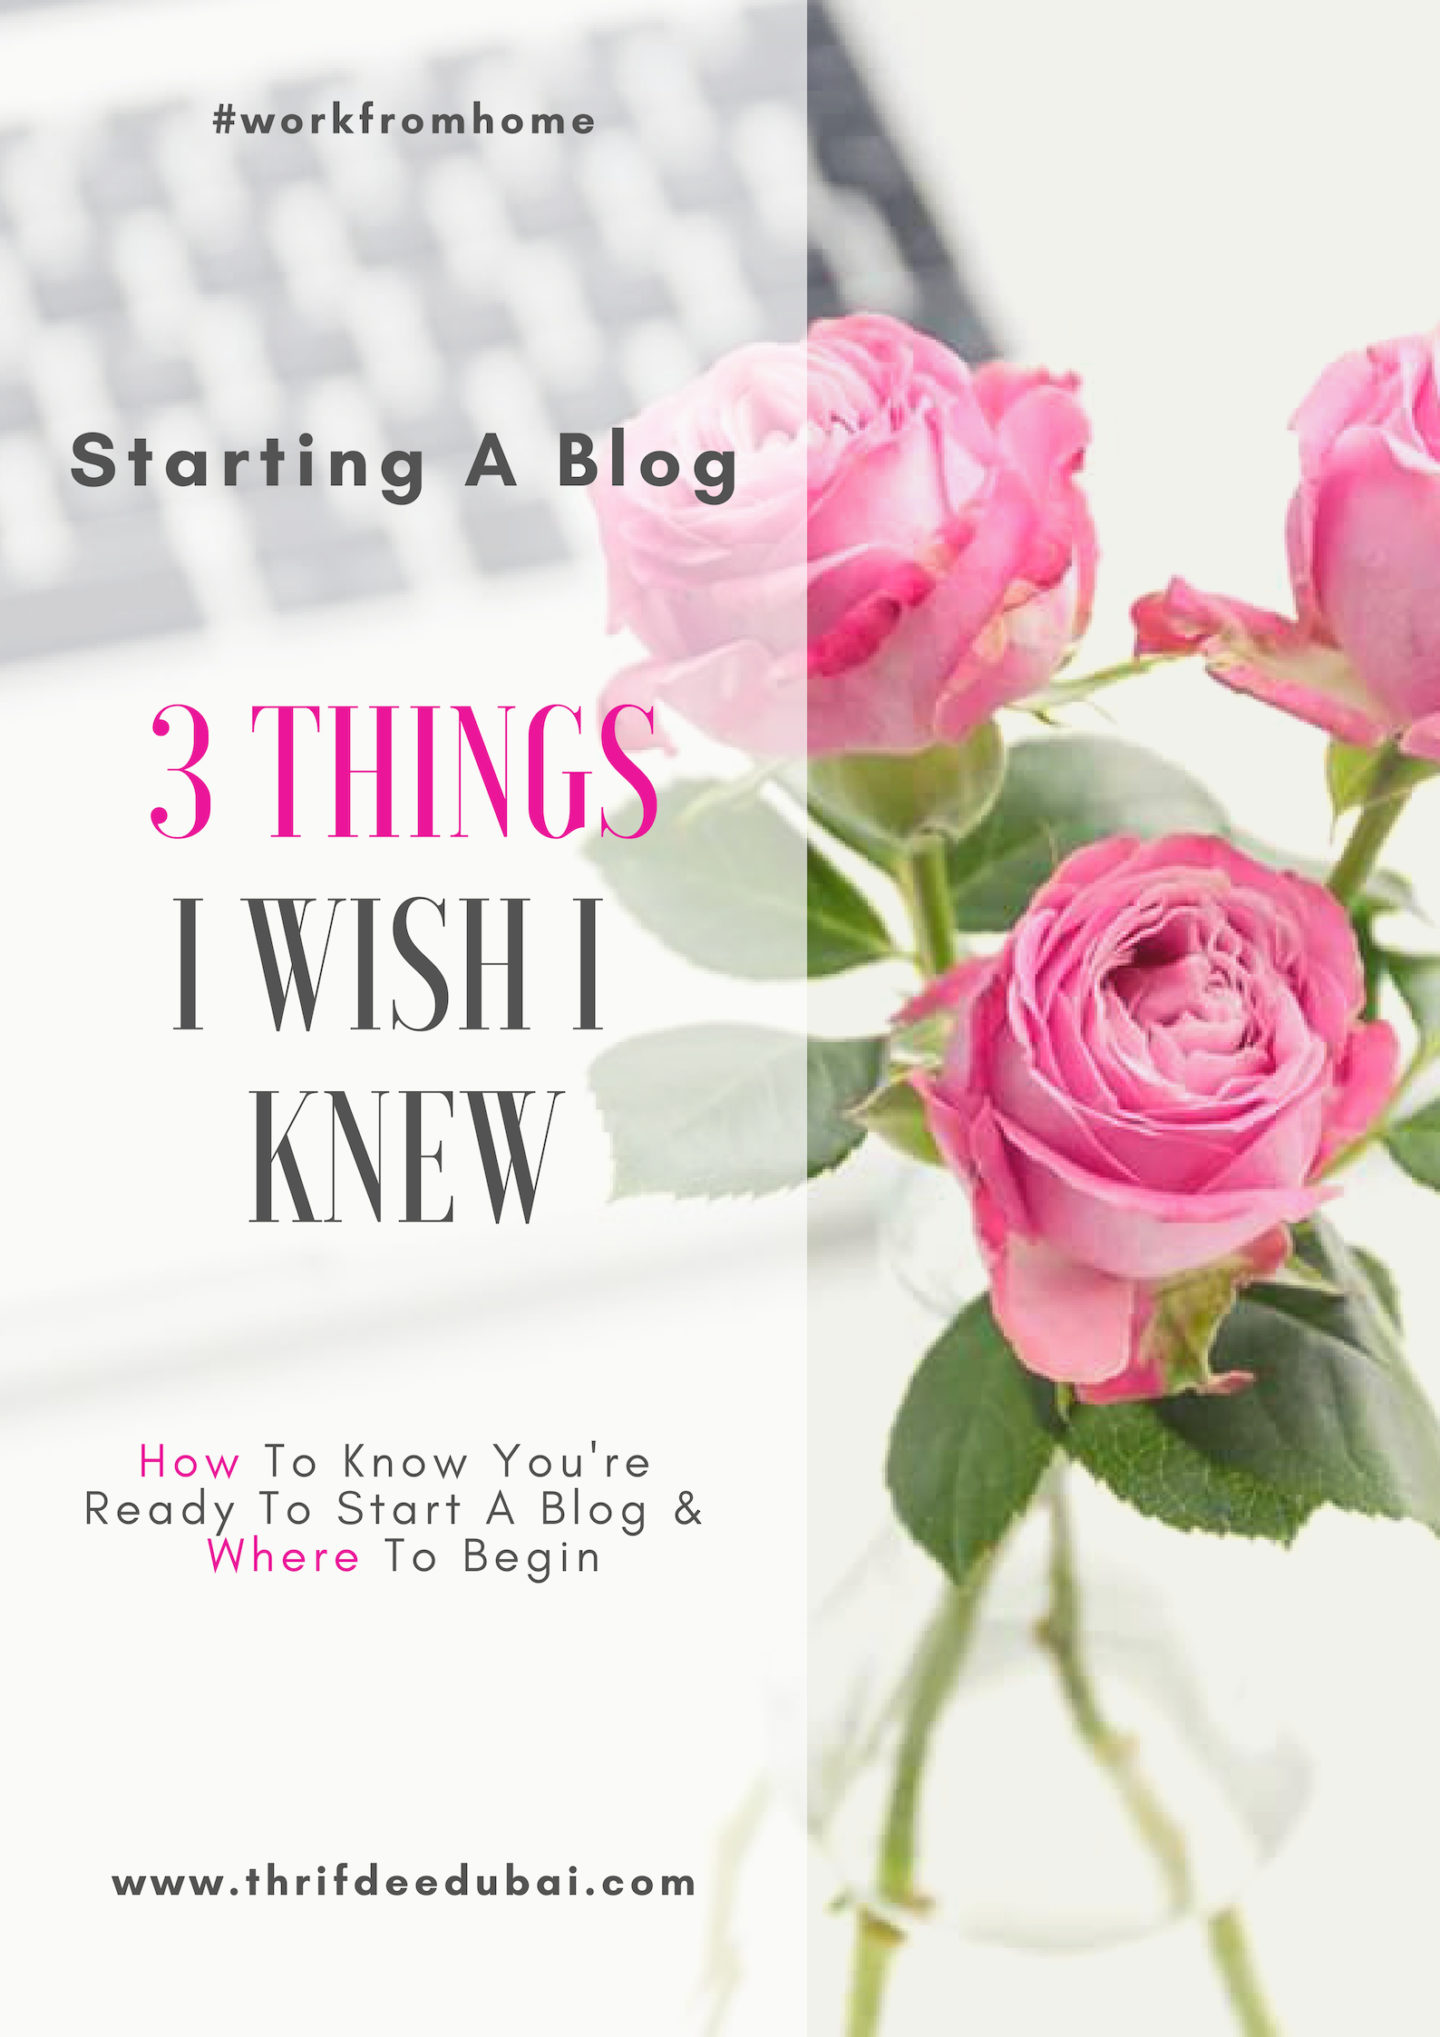 Starting A Blog – 3 Important Things I wish I knew